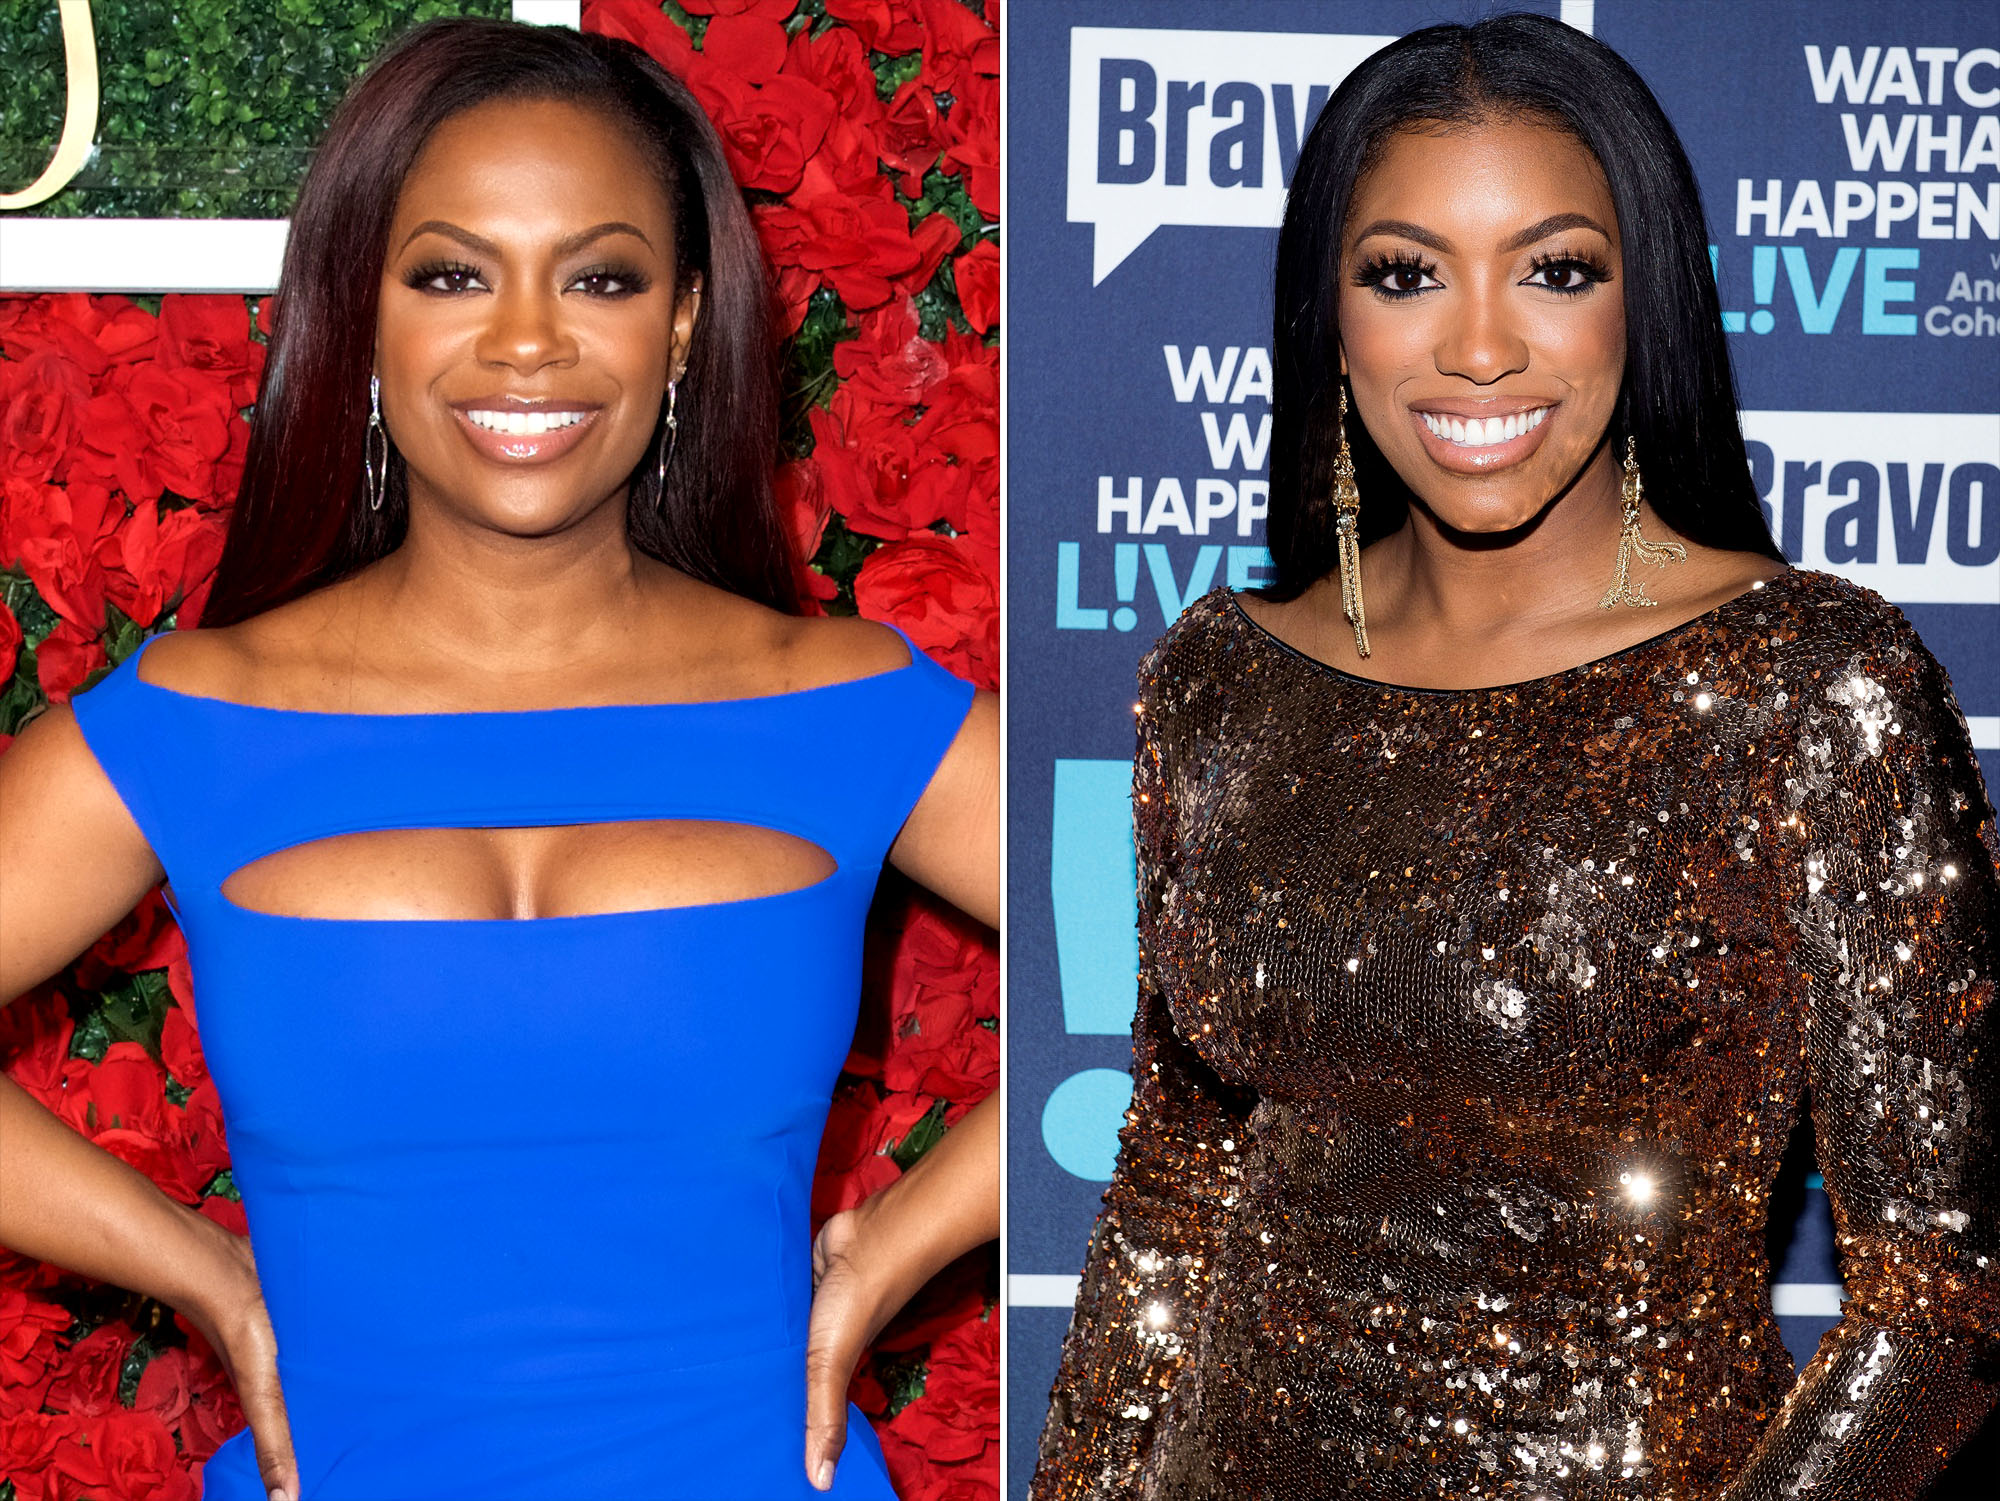 """porsha-williams-wants-to-protect-her-energy-and-focus-on-her-growth-in-2019-fans-ask-her-to-forget-about-kandi-burruss"""